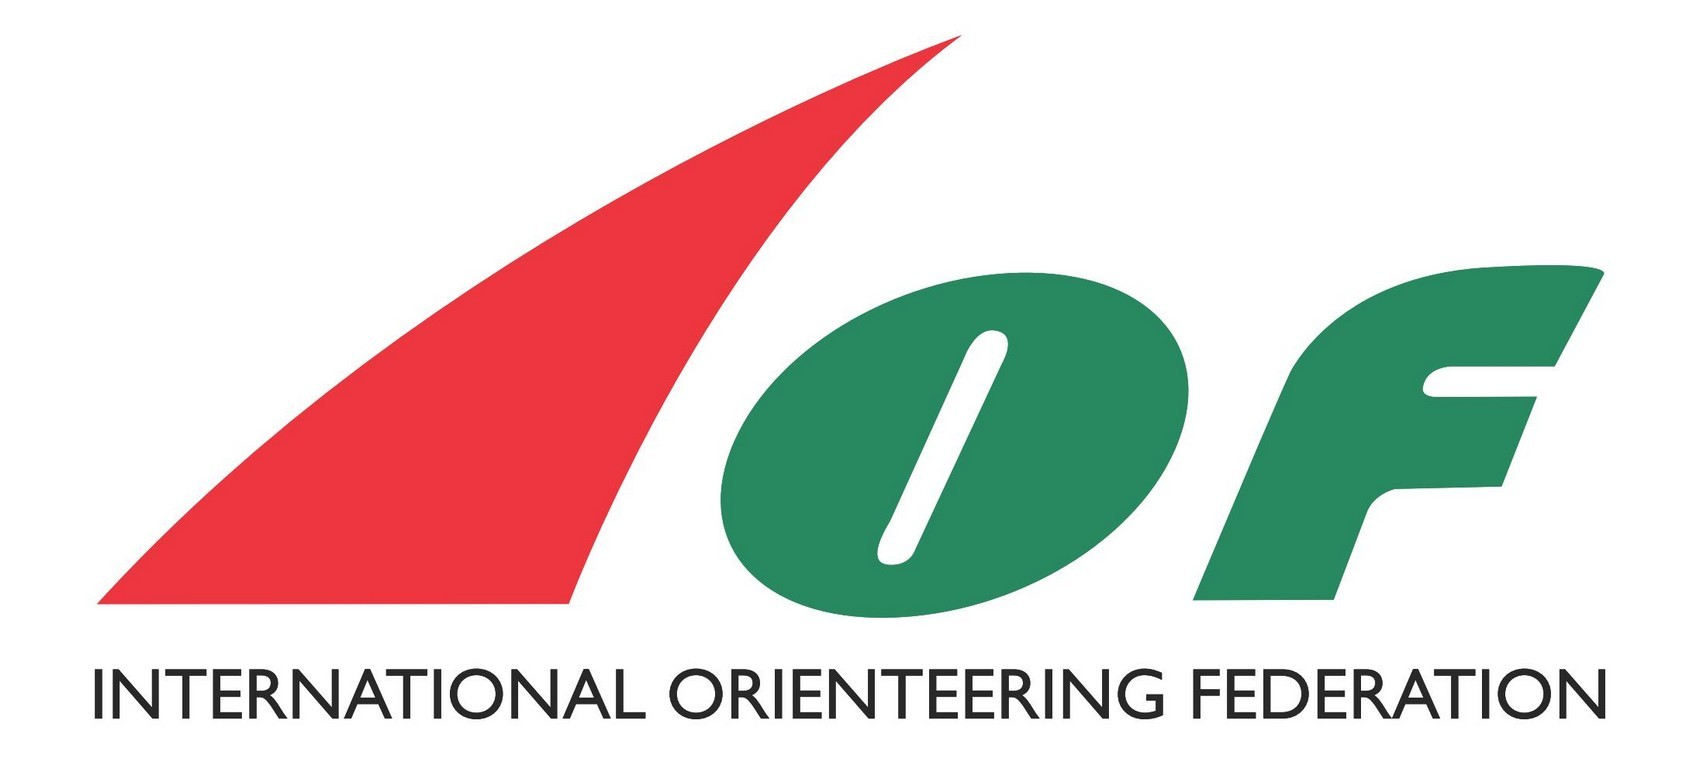 International Orienteering Federation (IOF) Logo [EPS File] png